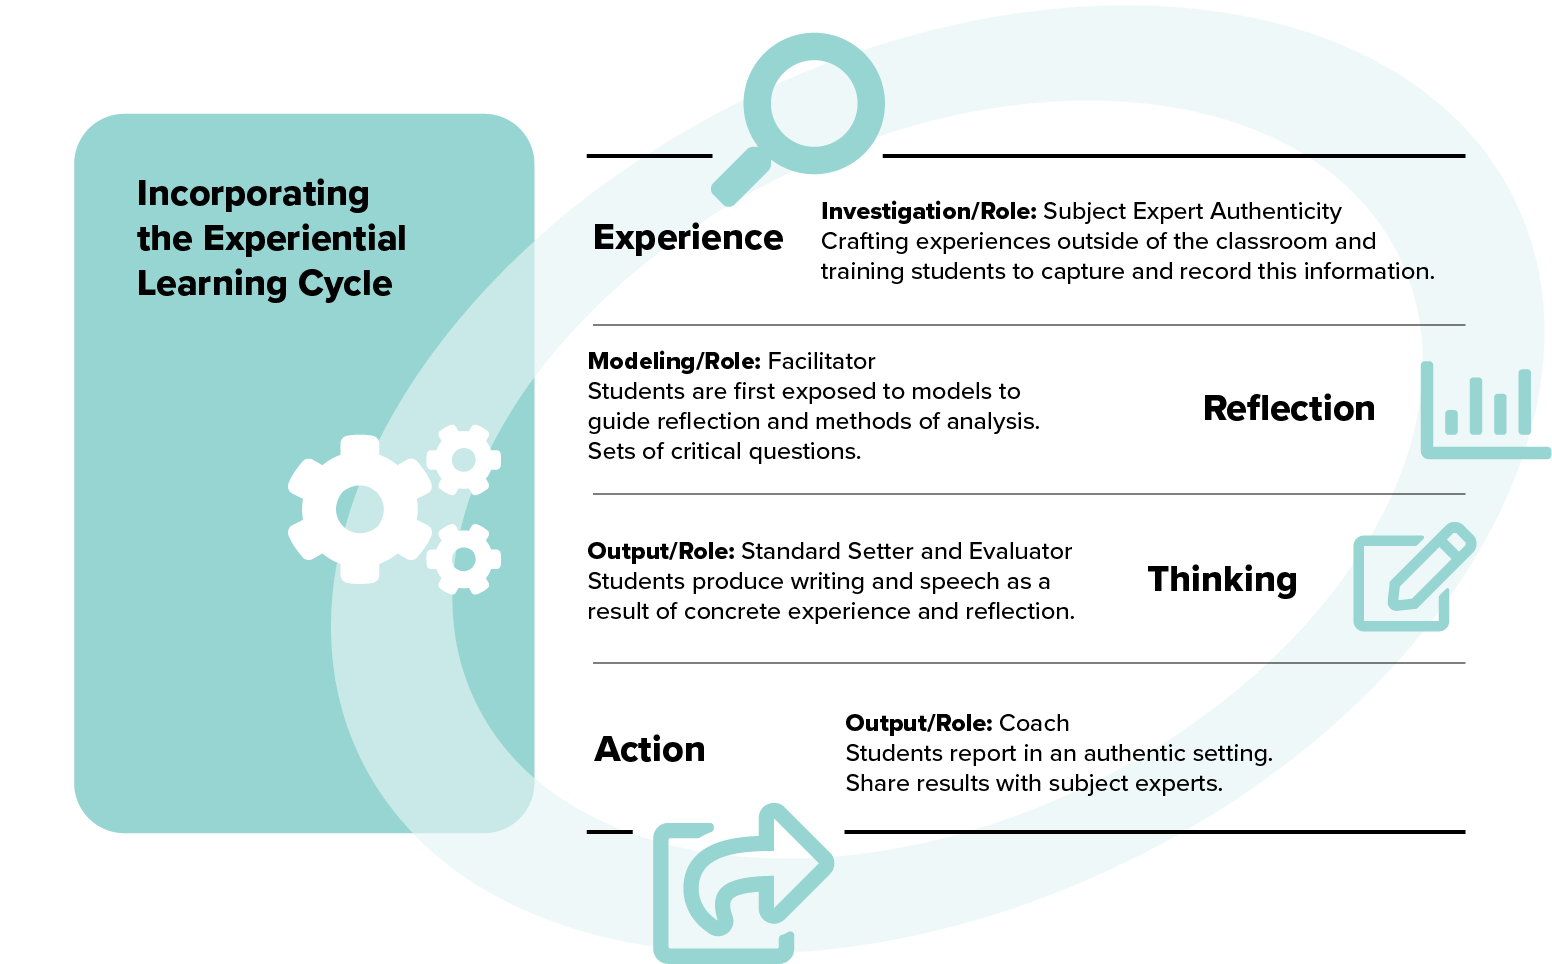 illustration graphic showing experiential learning cycle